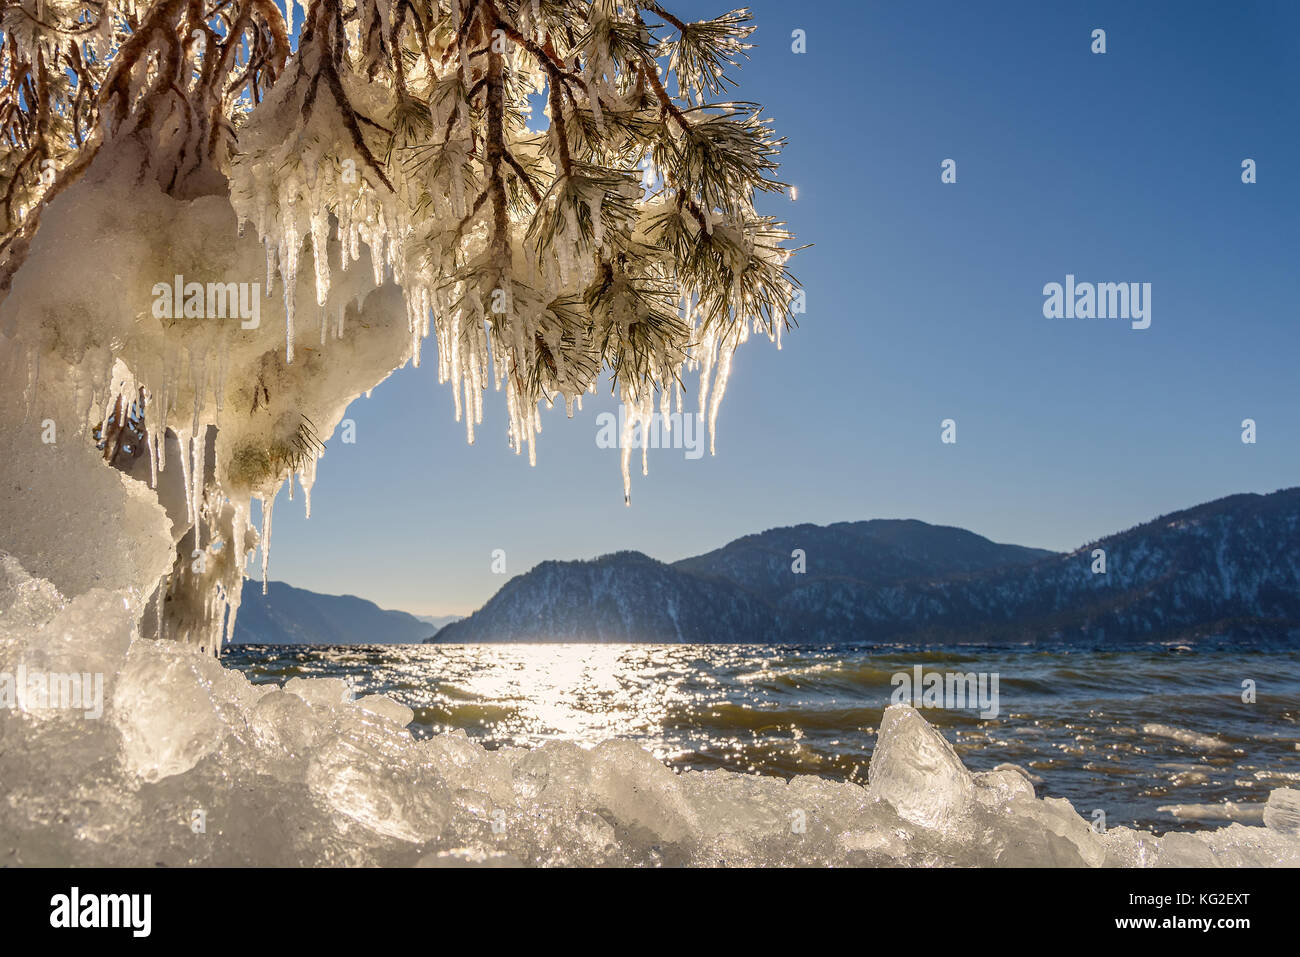 Beautiful winter views with the lake, mountains, ice on the shore, the sun glare on the water, and pine branches - Stock Image